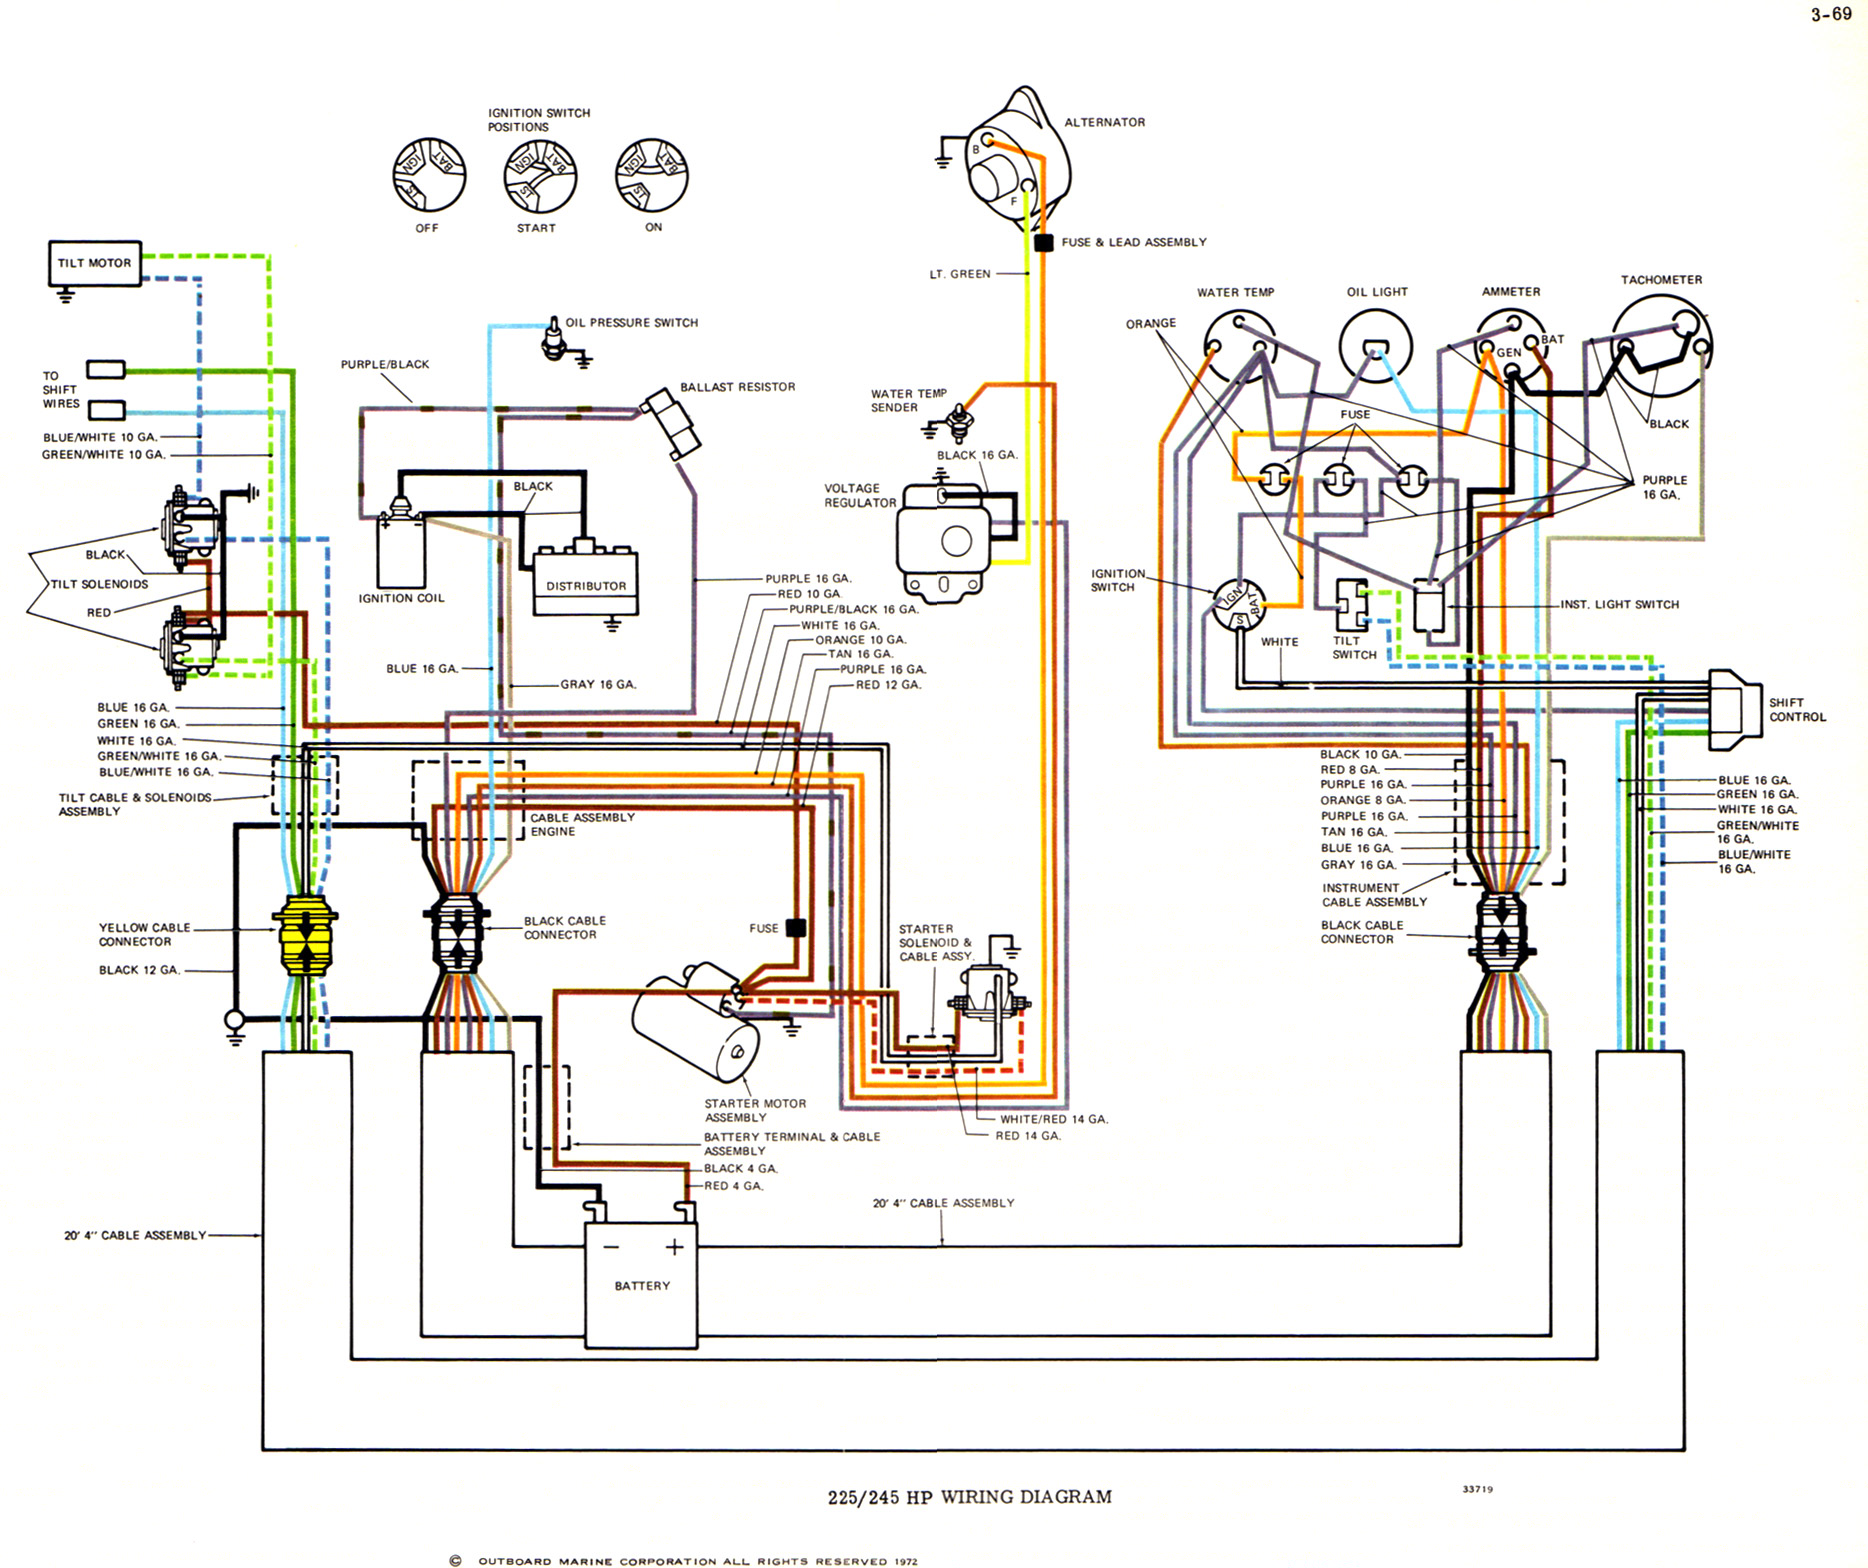 73_OMC_V8_all_big marine tachometer wiring diagram sun tachometer wiring diagram suzuki outboard tachometer wiring diagram at readyjetset.co